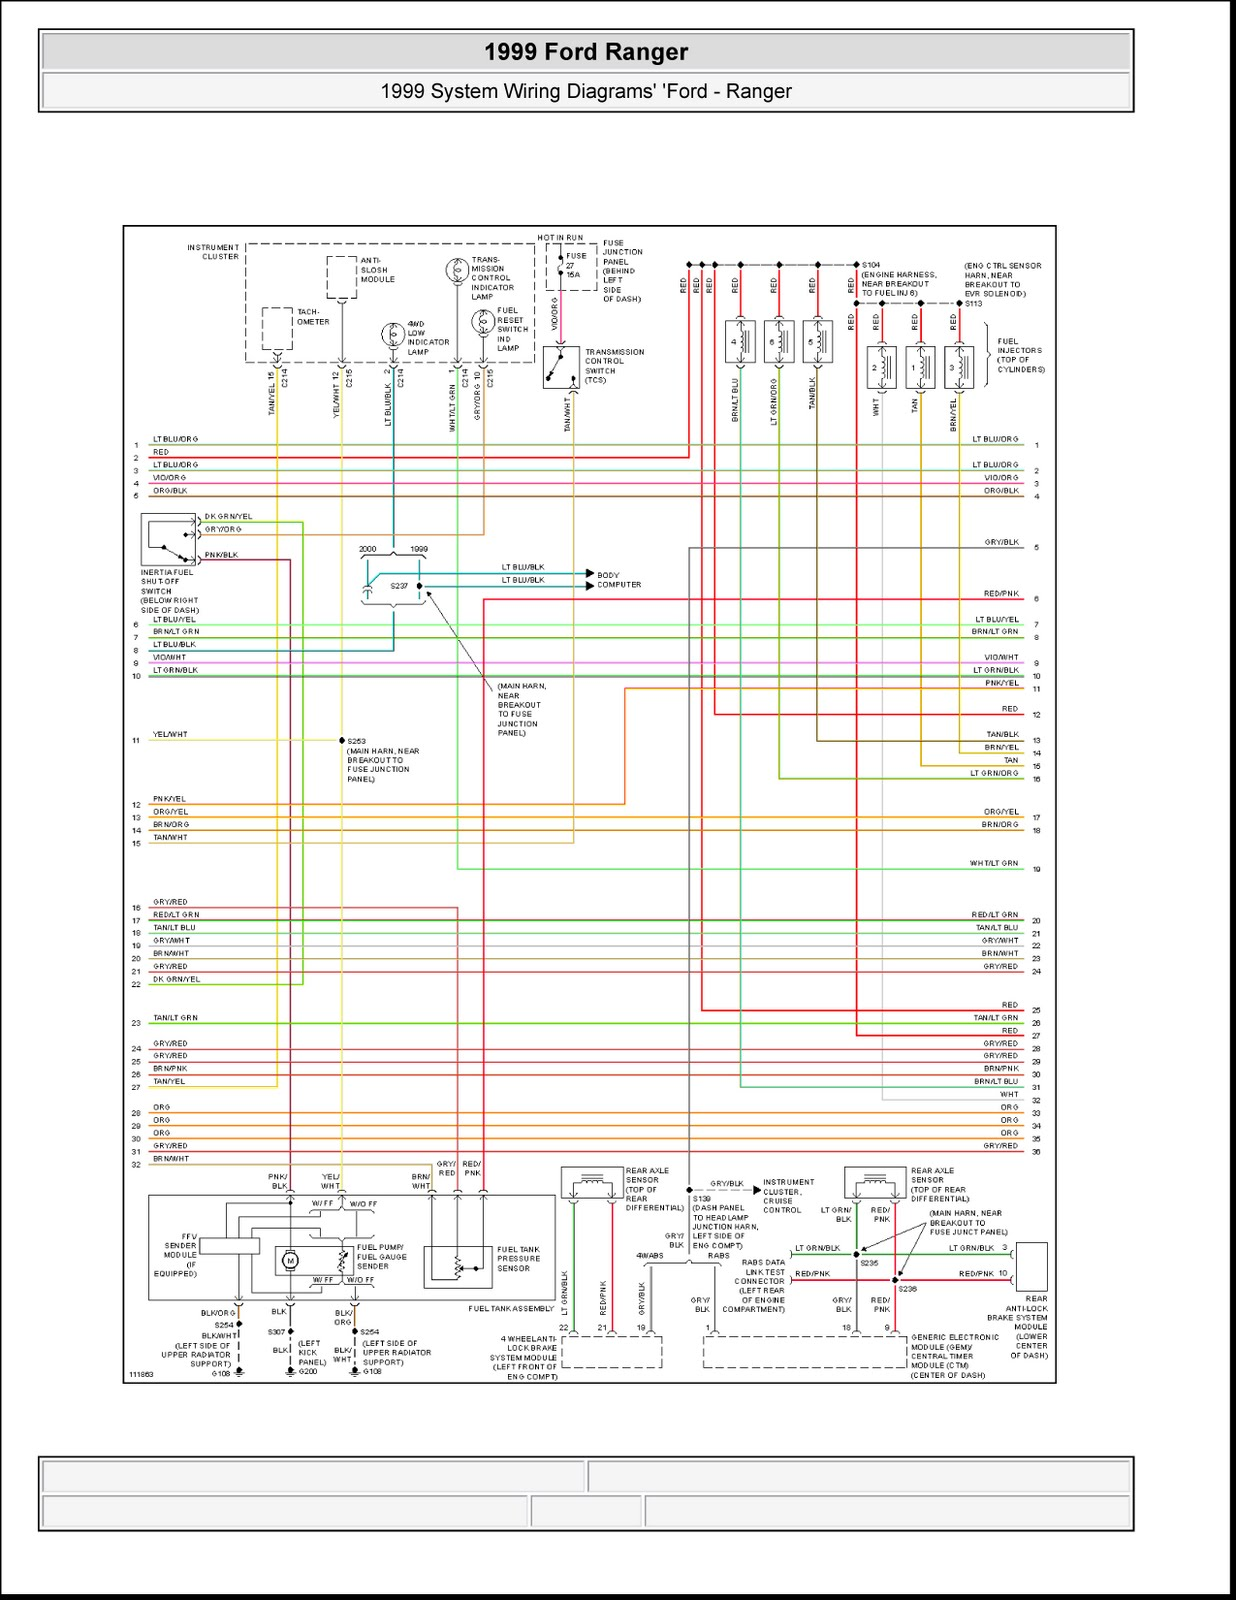 small resolution of 1999 ford ranger system wiring diagrams